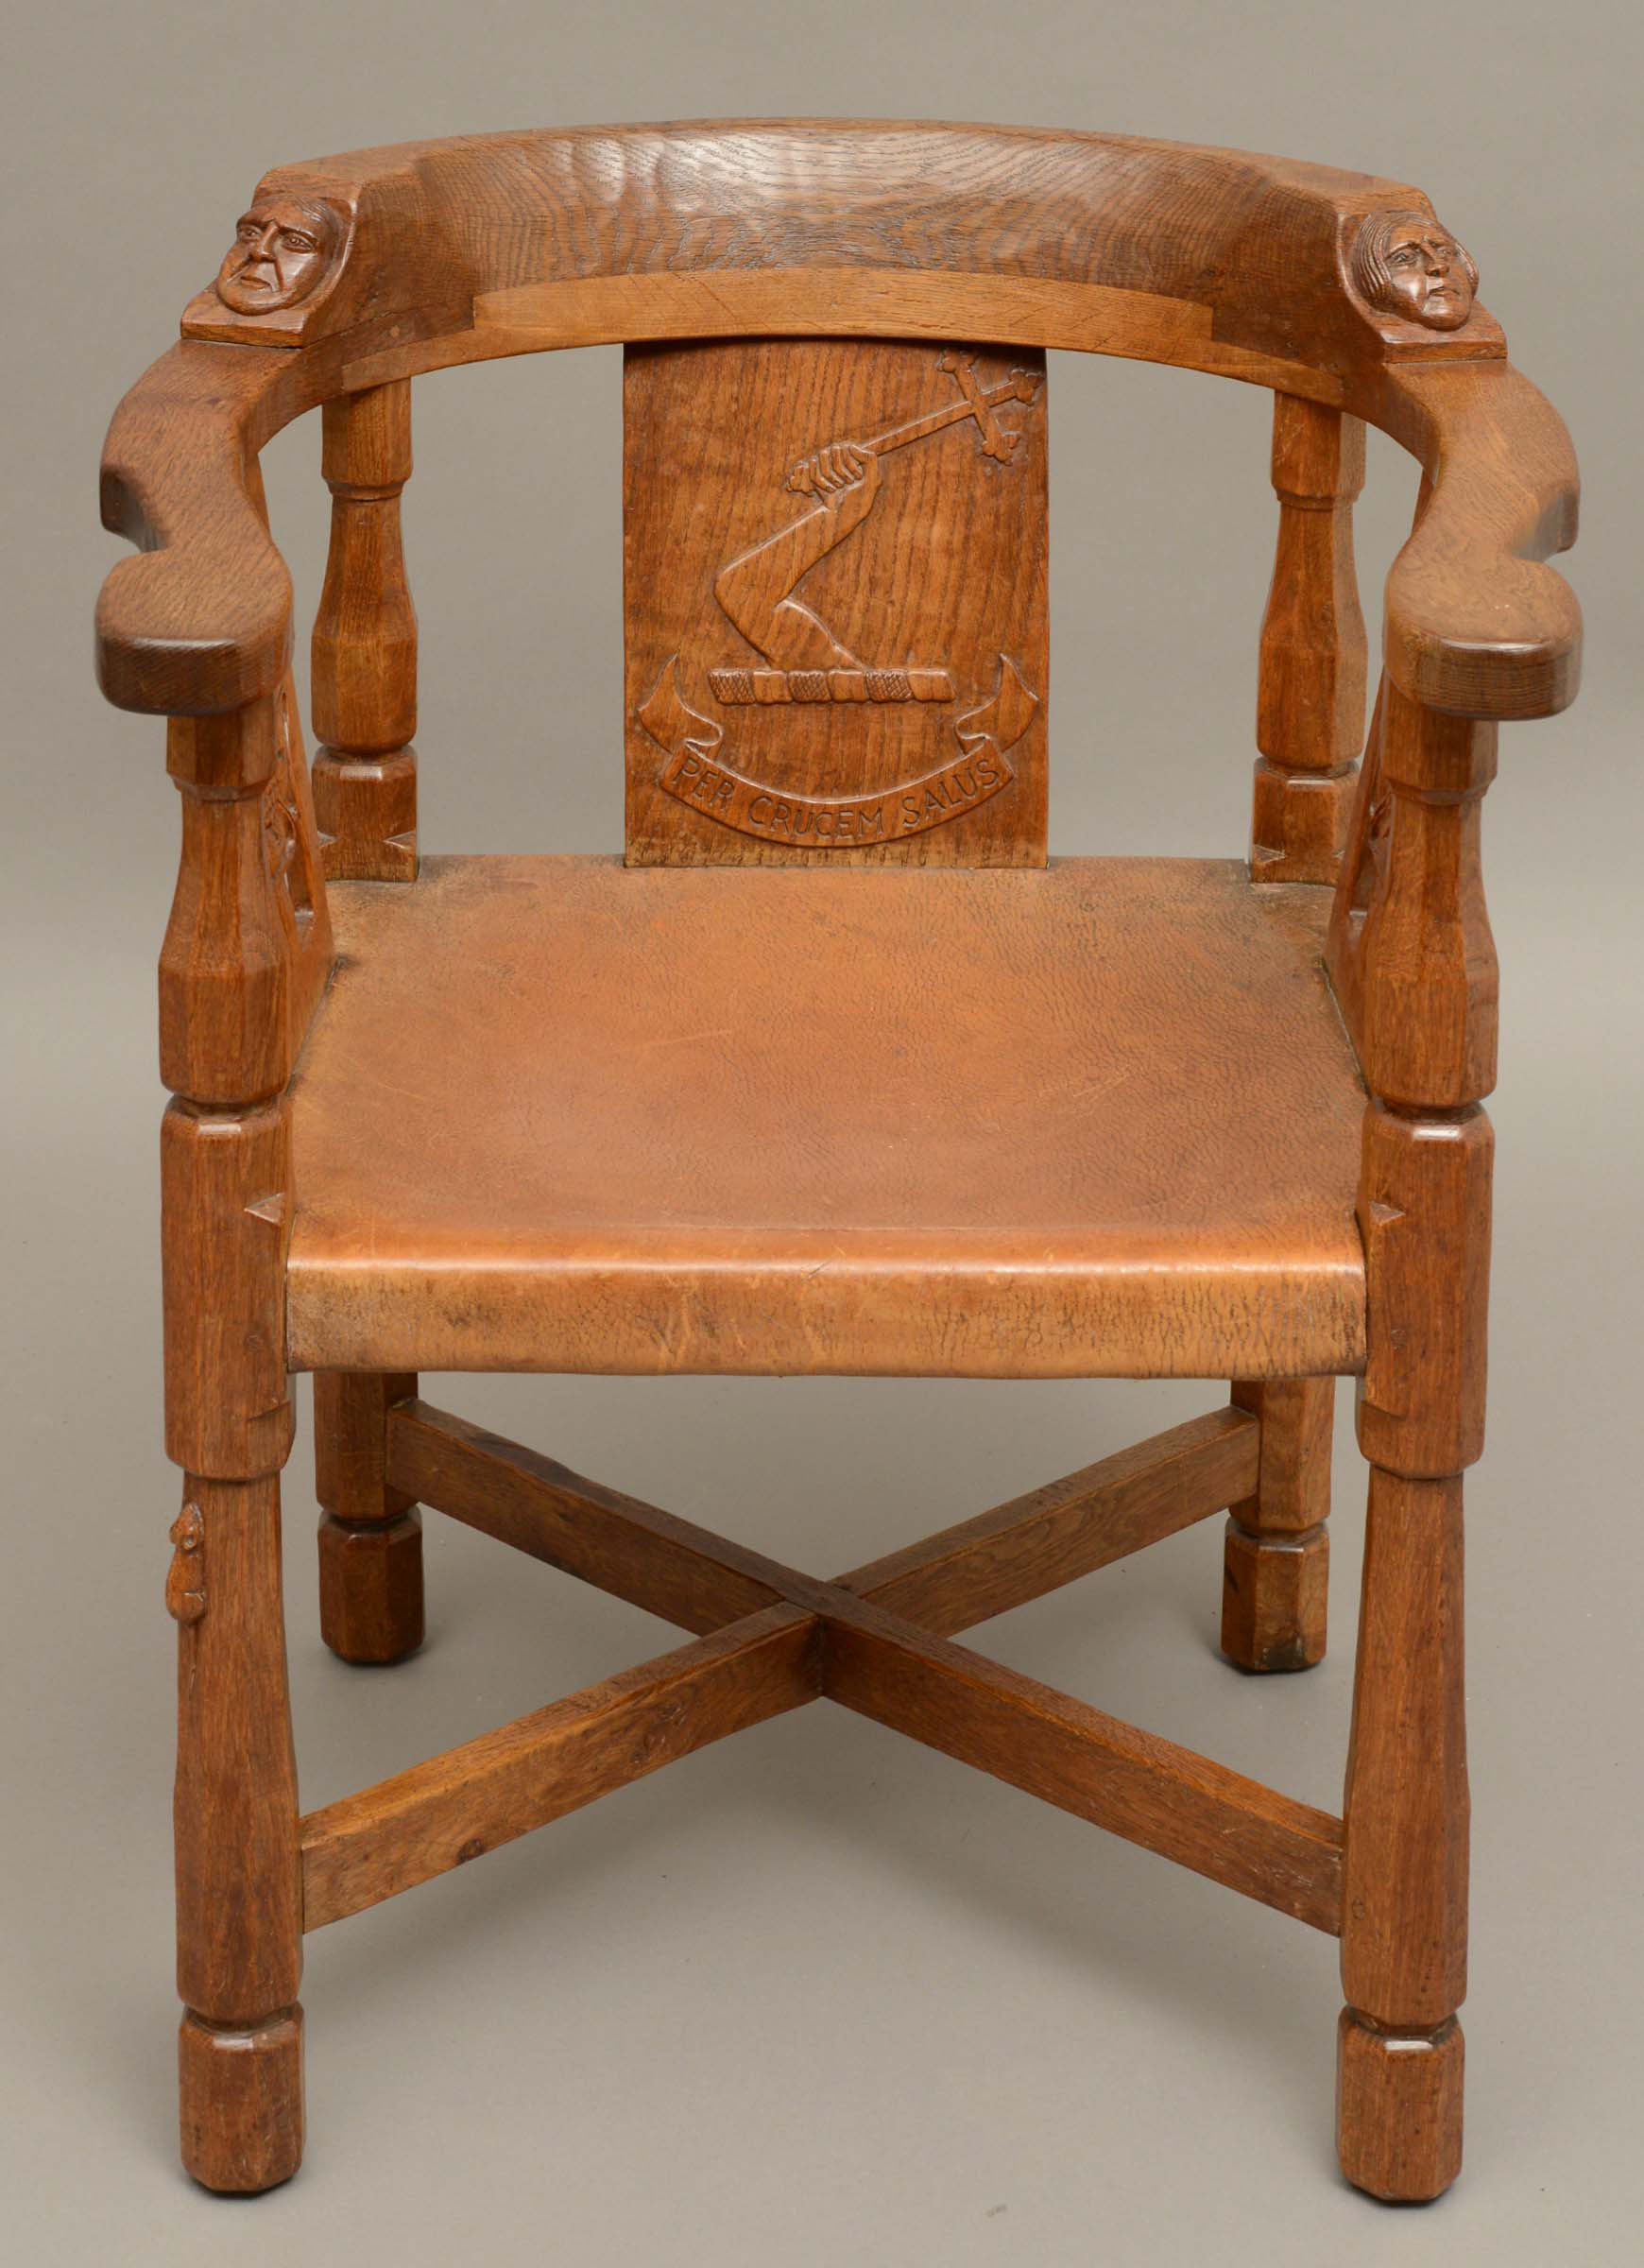 ROBERT THOMPSON OF KILBURN - MOUSEMAN MONKS CHAIR a circa 1920s/1930s oak Monk's armchair with a - Image 3 of 27